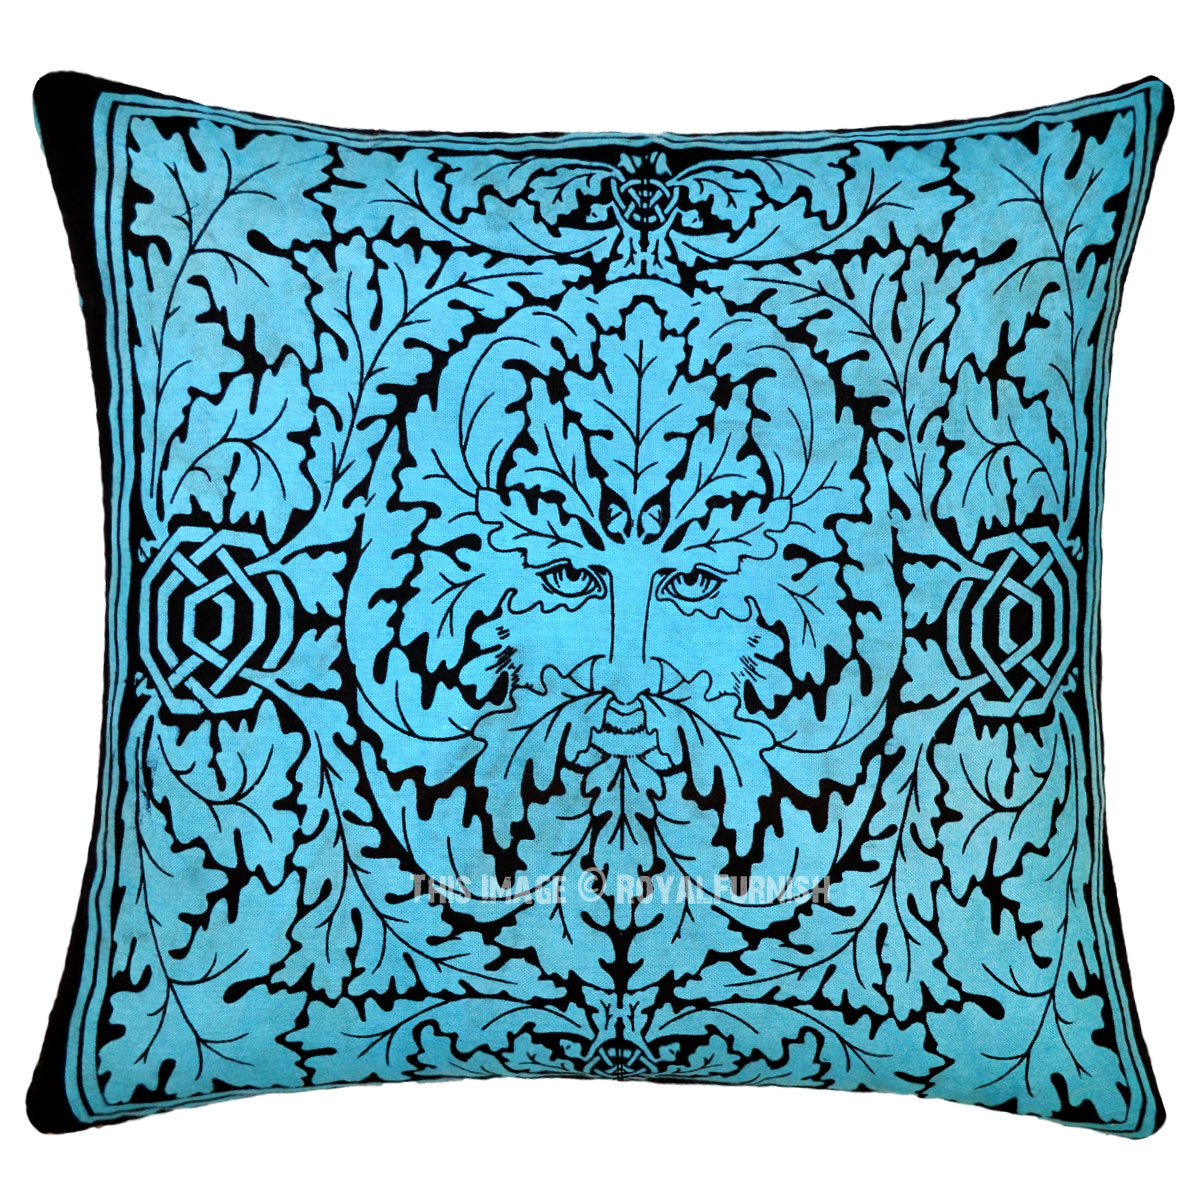 Turquoise Blue Greenman Featuring Decorative Tie Dye Throw